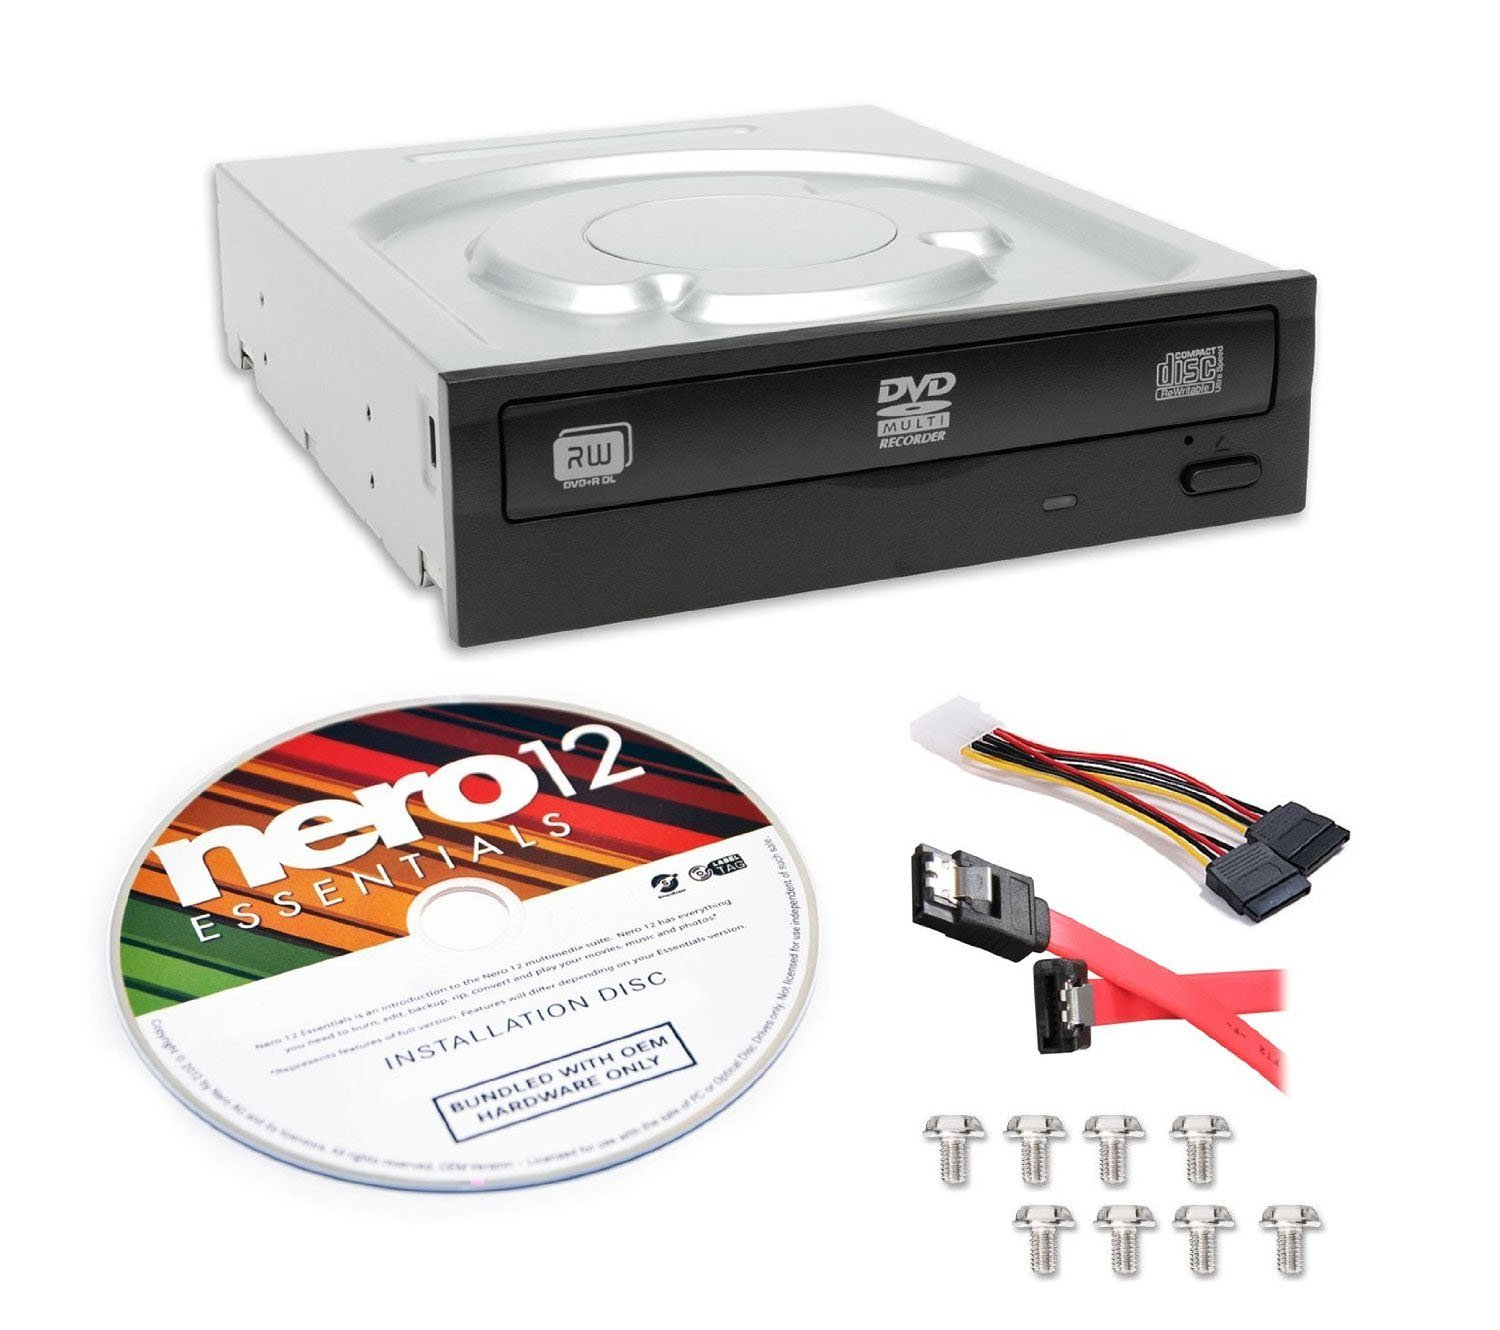 Lite-On Super AllWrite IHAS124-04-KIT 24X DVD+/-RW Dual Layer Burner + Nero 12 Essentials Burning Software + Sata Cable Kit